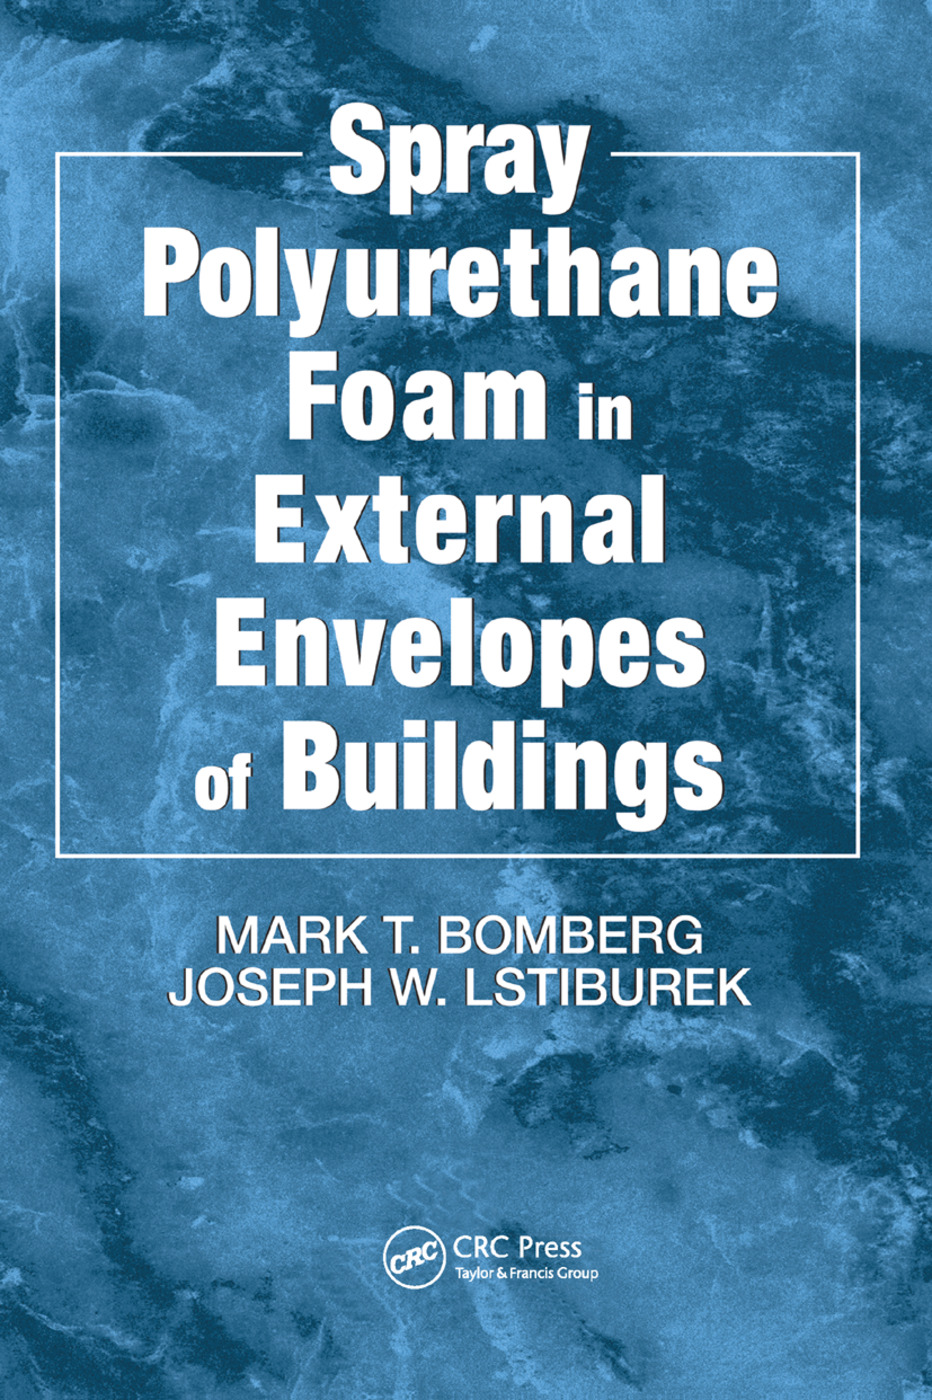 Spray Polyurethane Foam in External Envelopes of Buildings